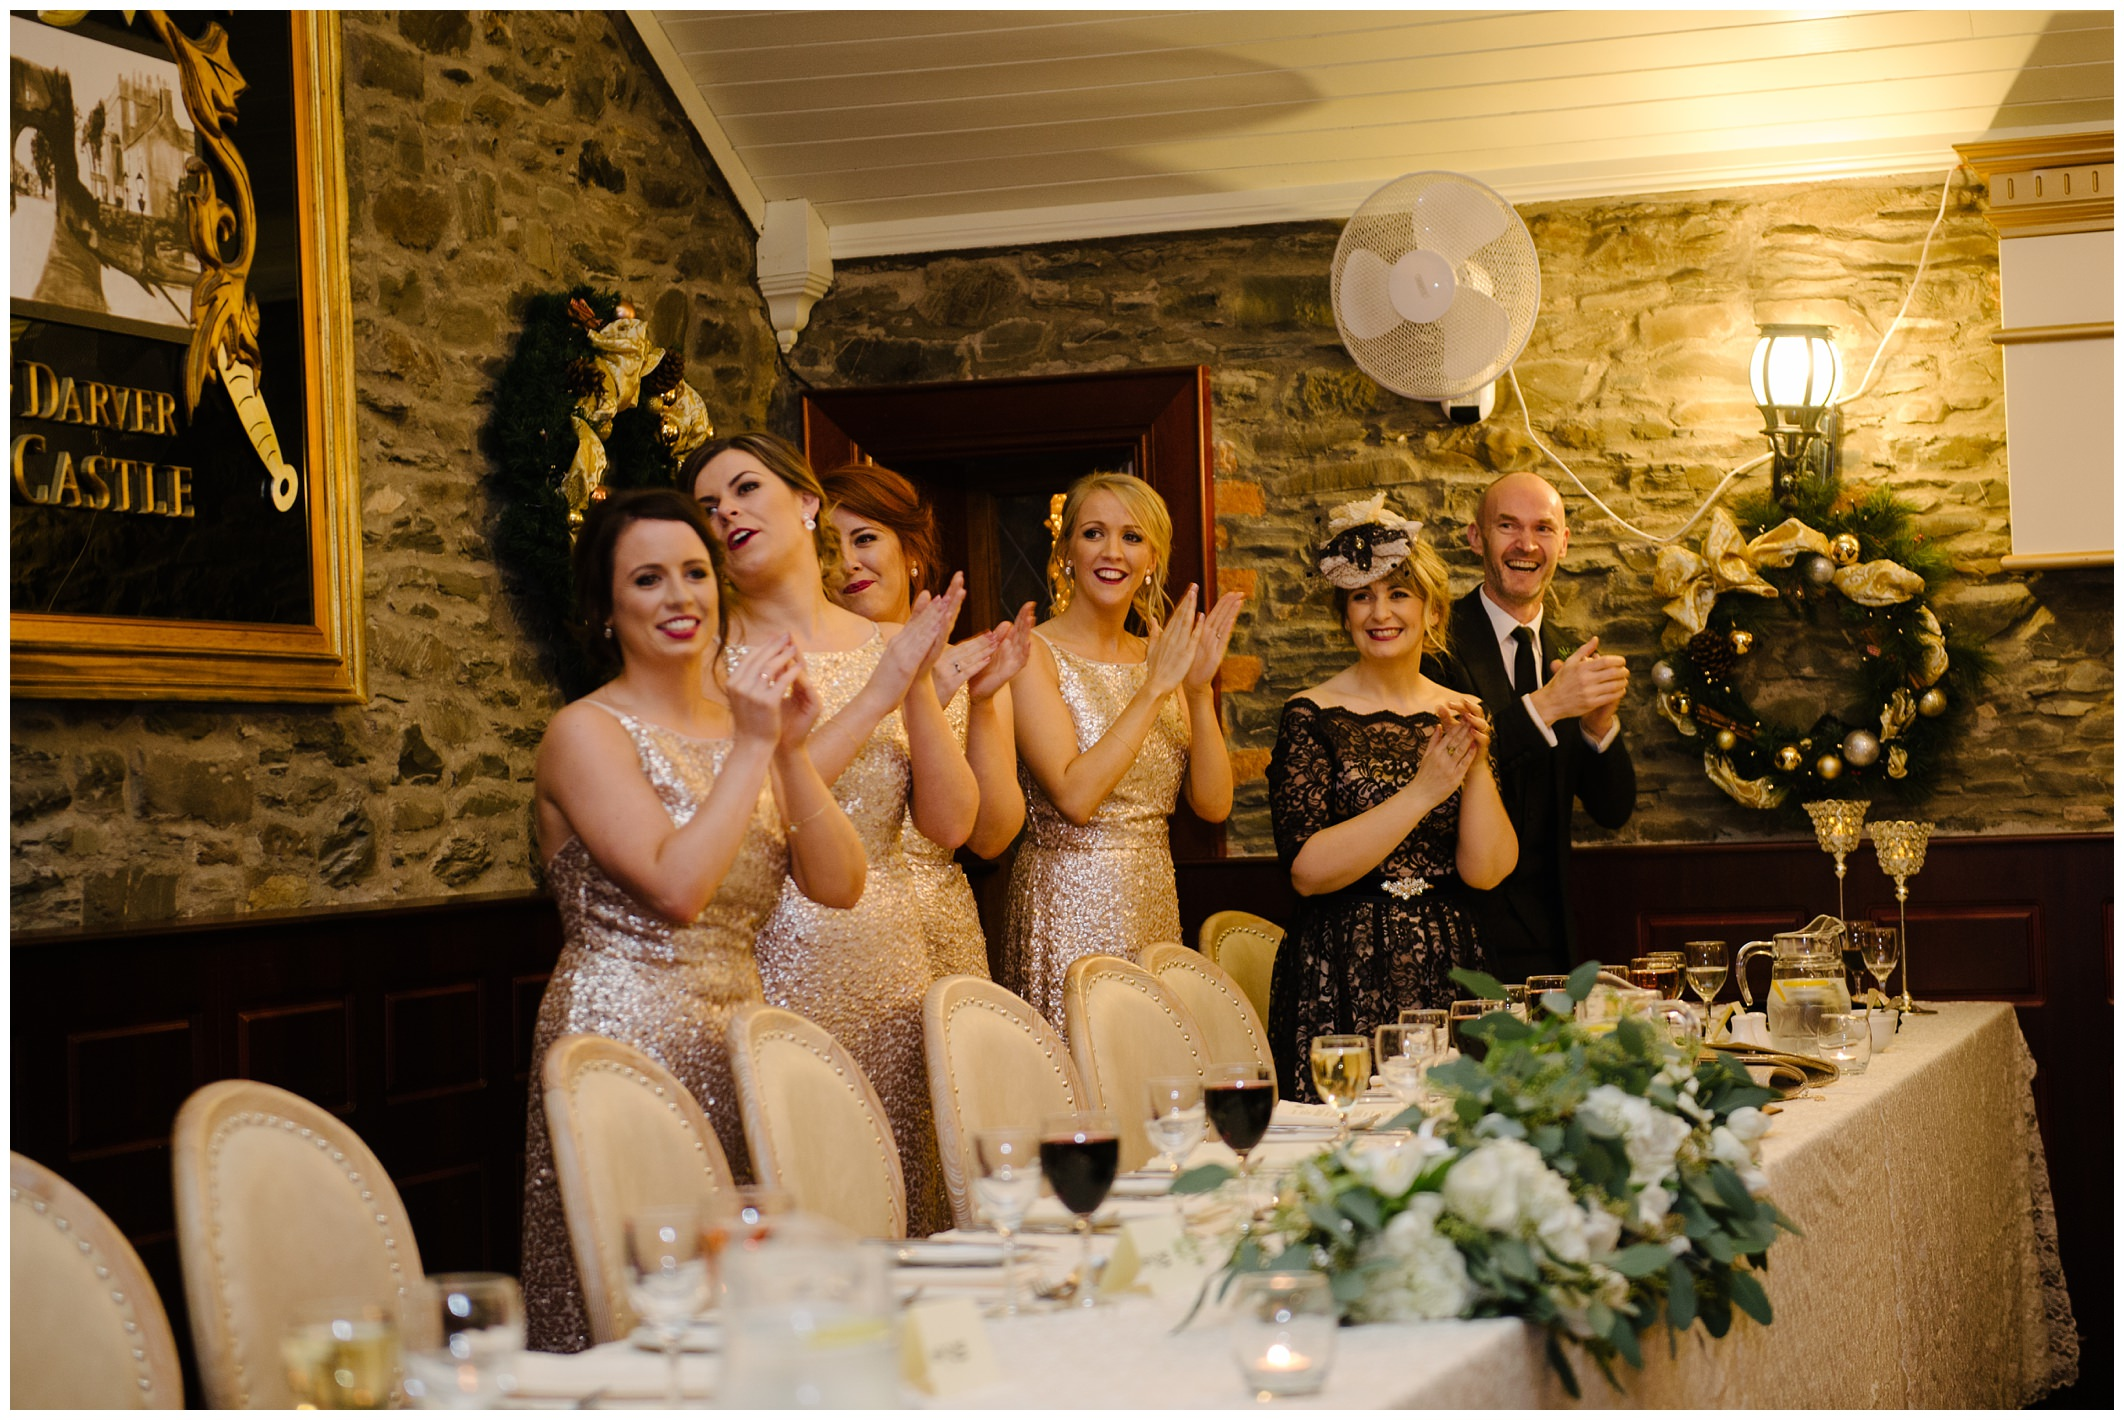 jade_donal_darver_castle_wedding_jude_browne_photography_0108.jpg